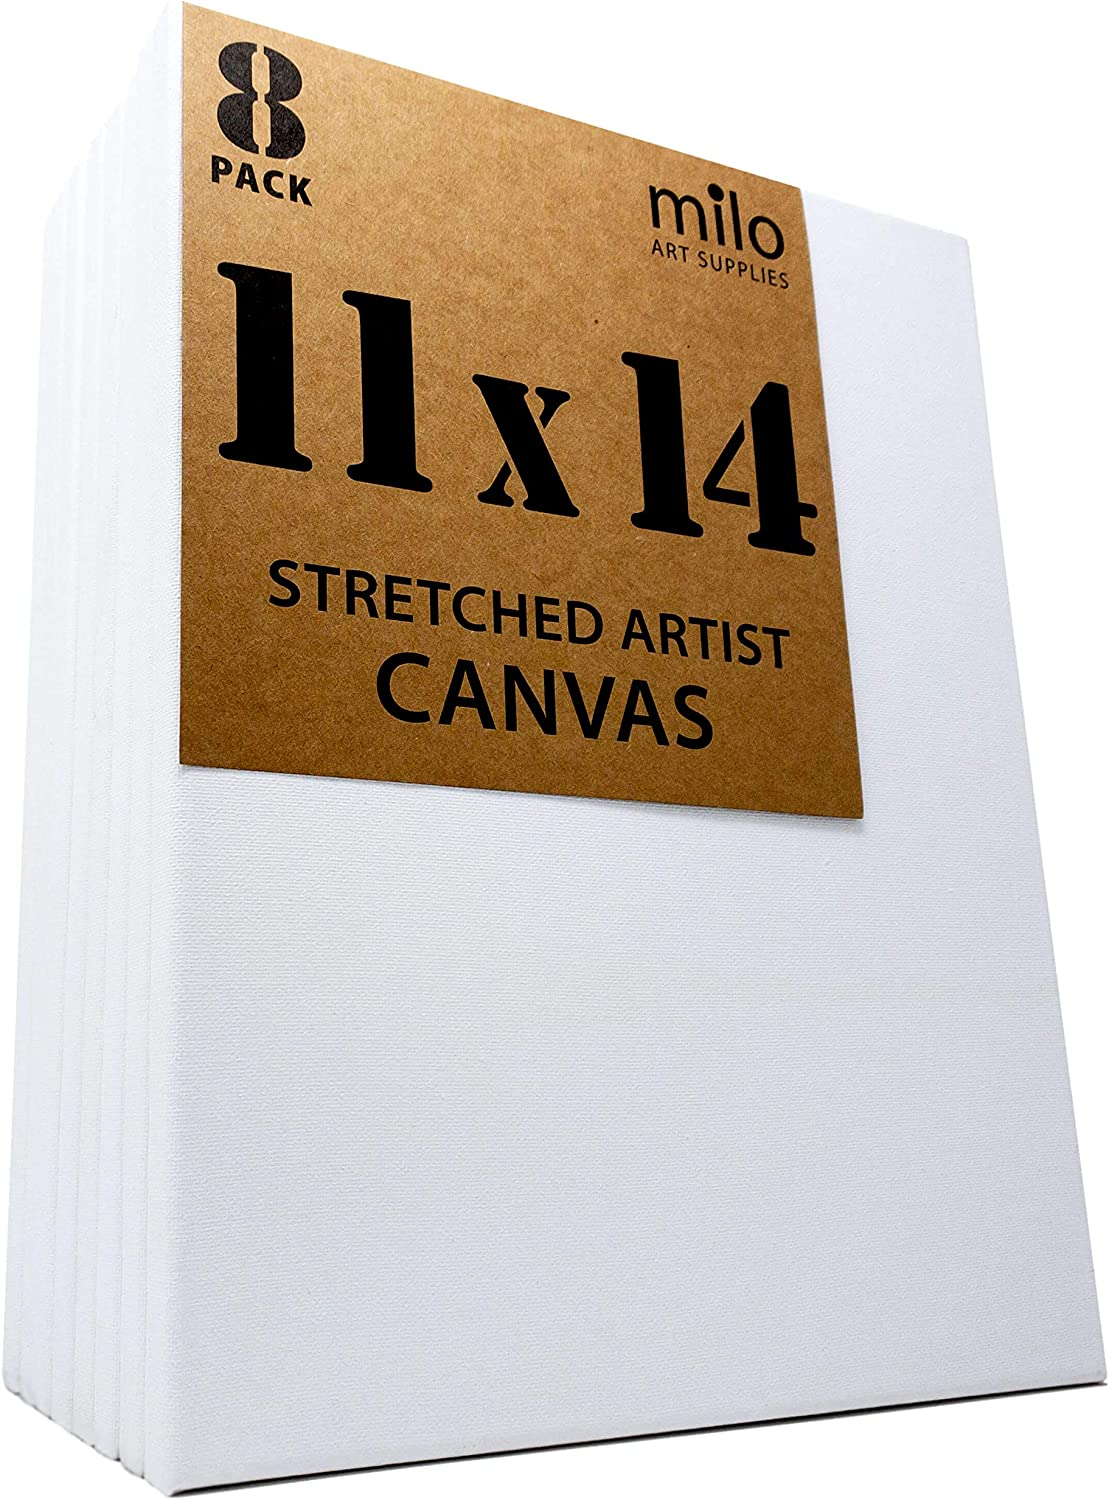 milo Pro Stretched Artist Canvas 18x24 inches 3//4 inch Studio Profile Pack of 4